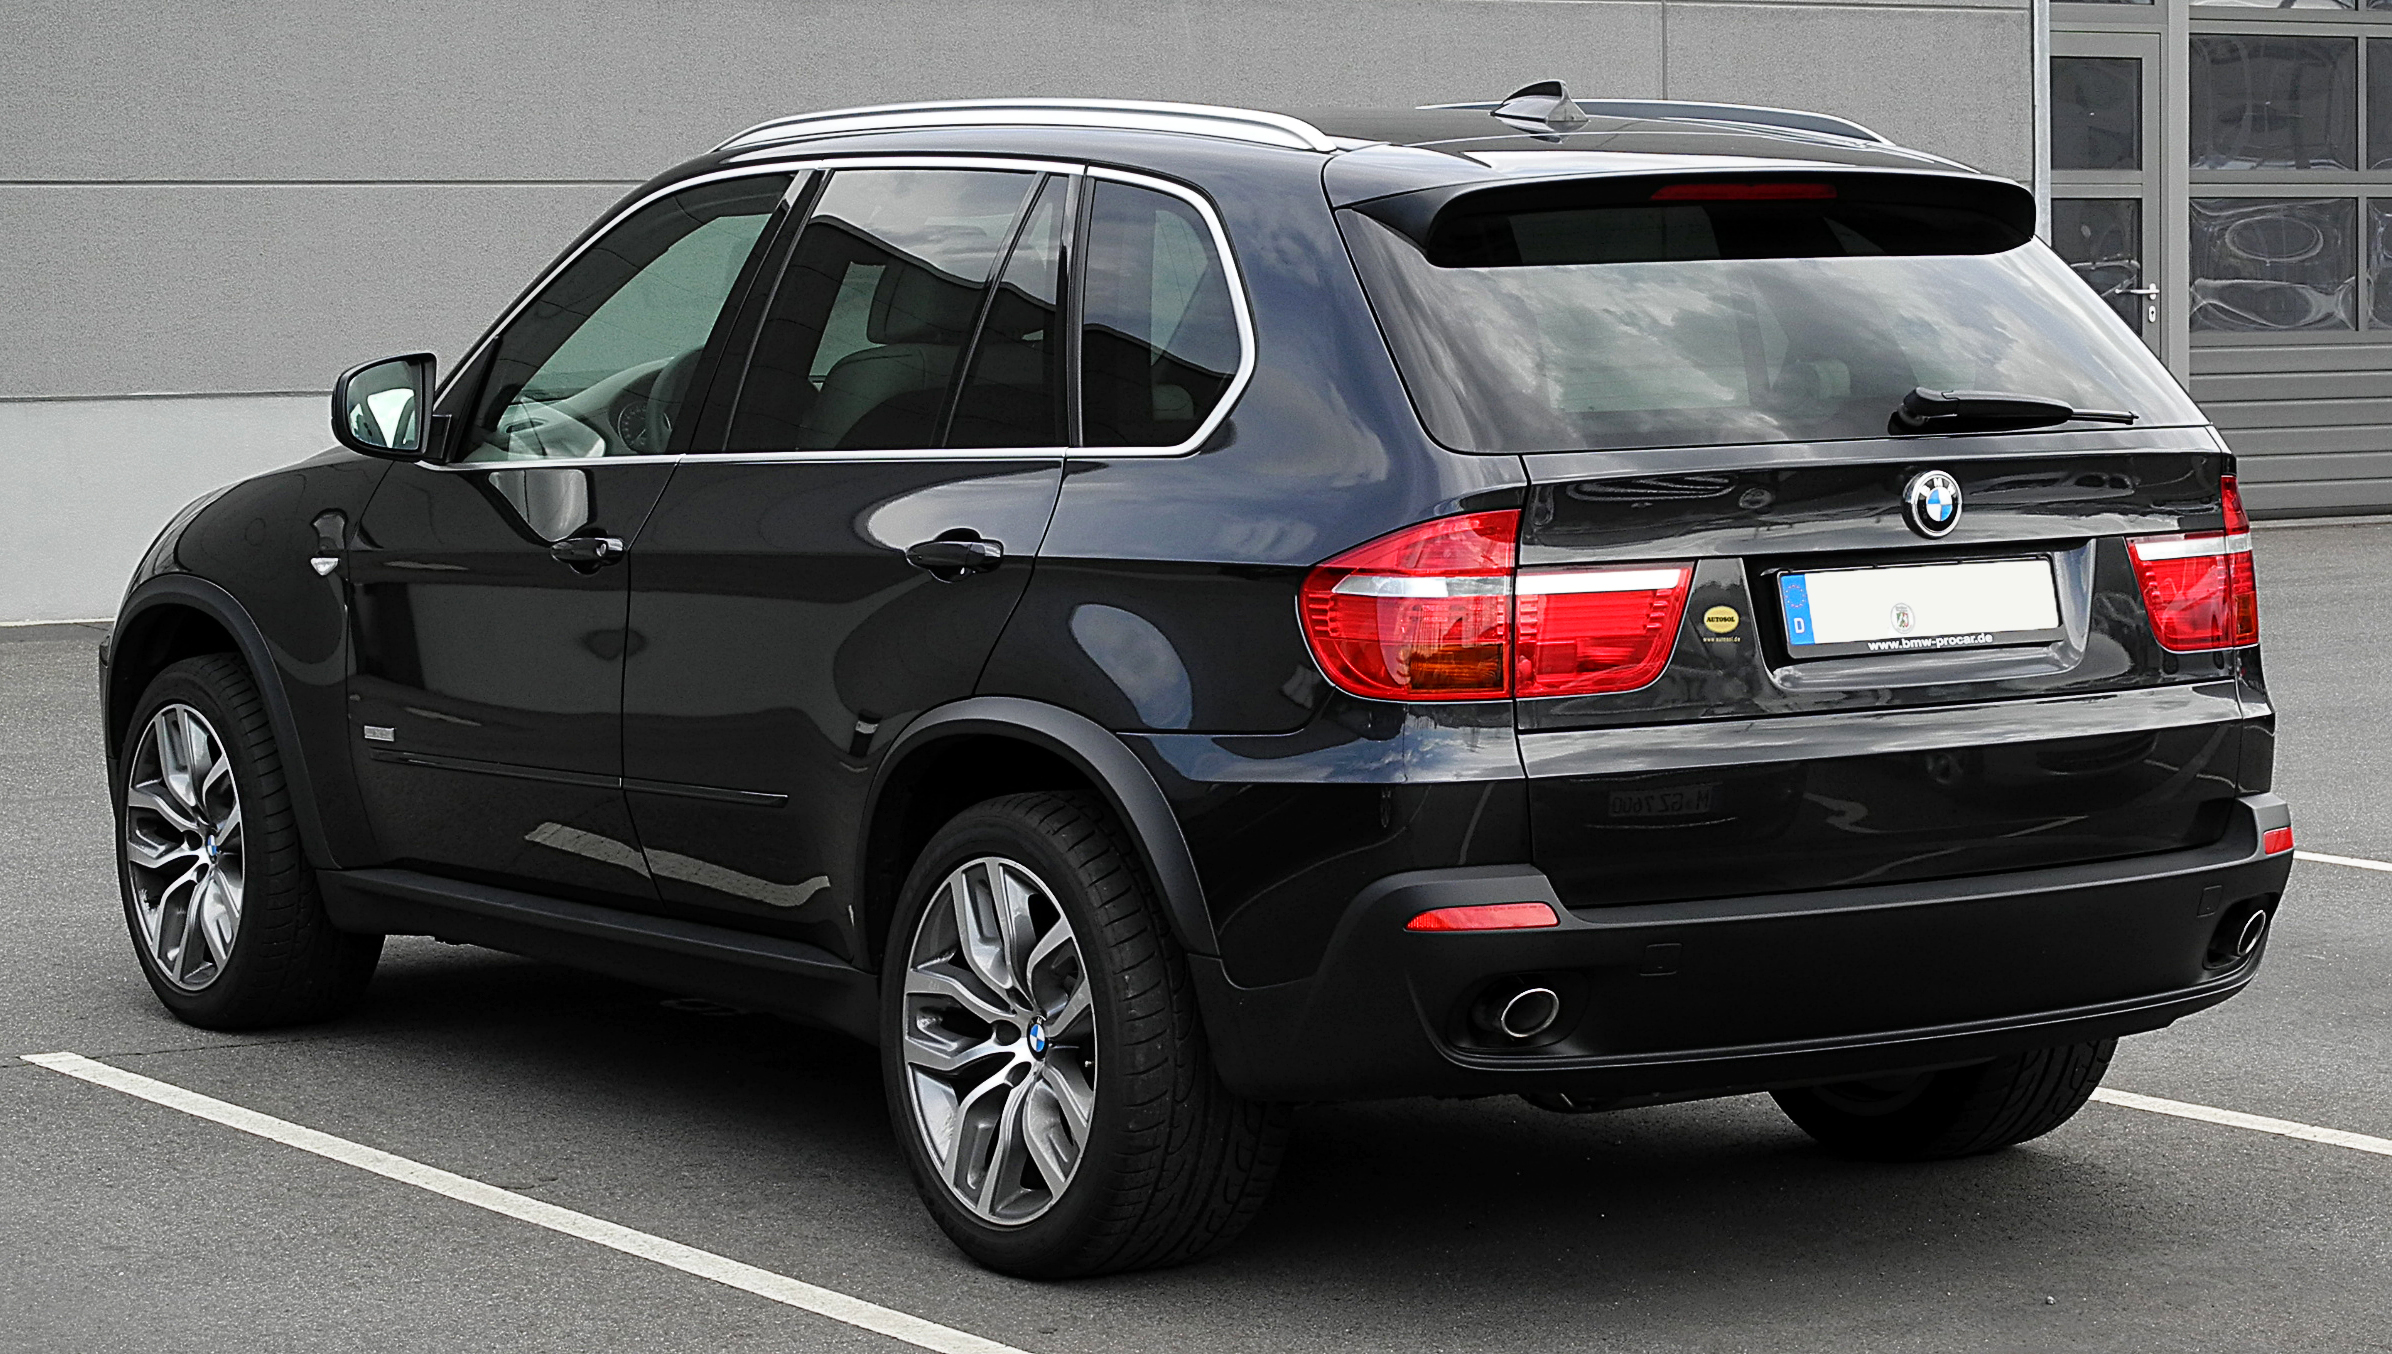 file bmw x5 edition 10 jahre x5 e70 heckansicht 17 juli 2011 d wikimedia. Black Bedroom Furniture Sets. Home Design Ideas